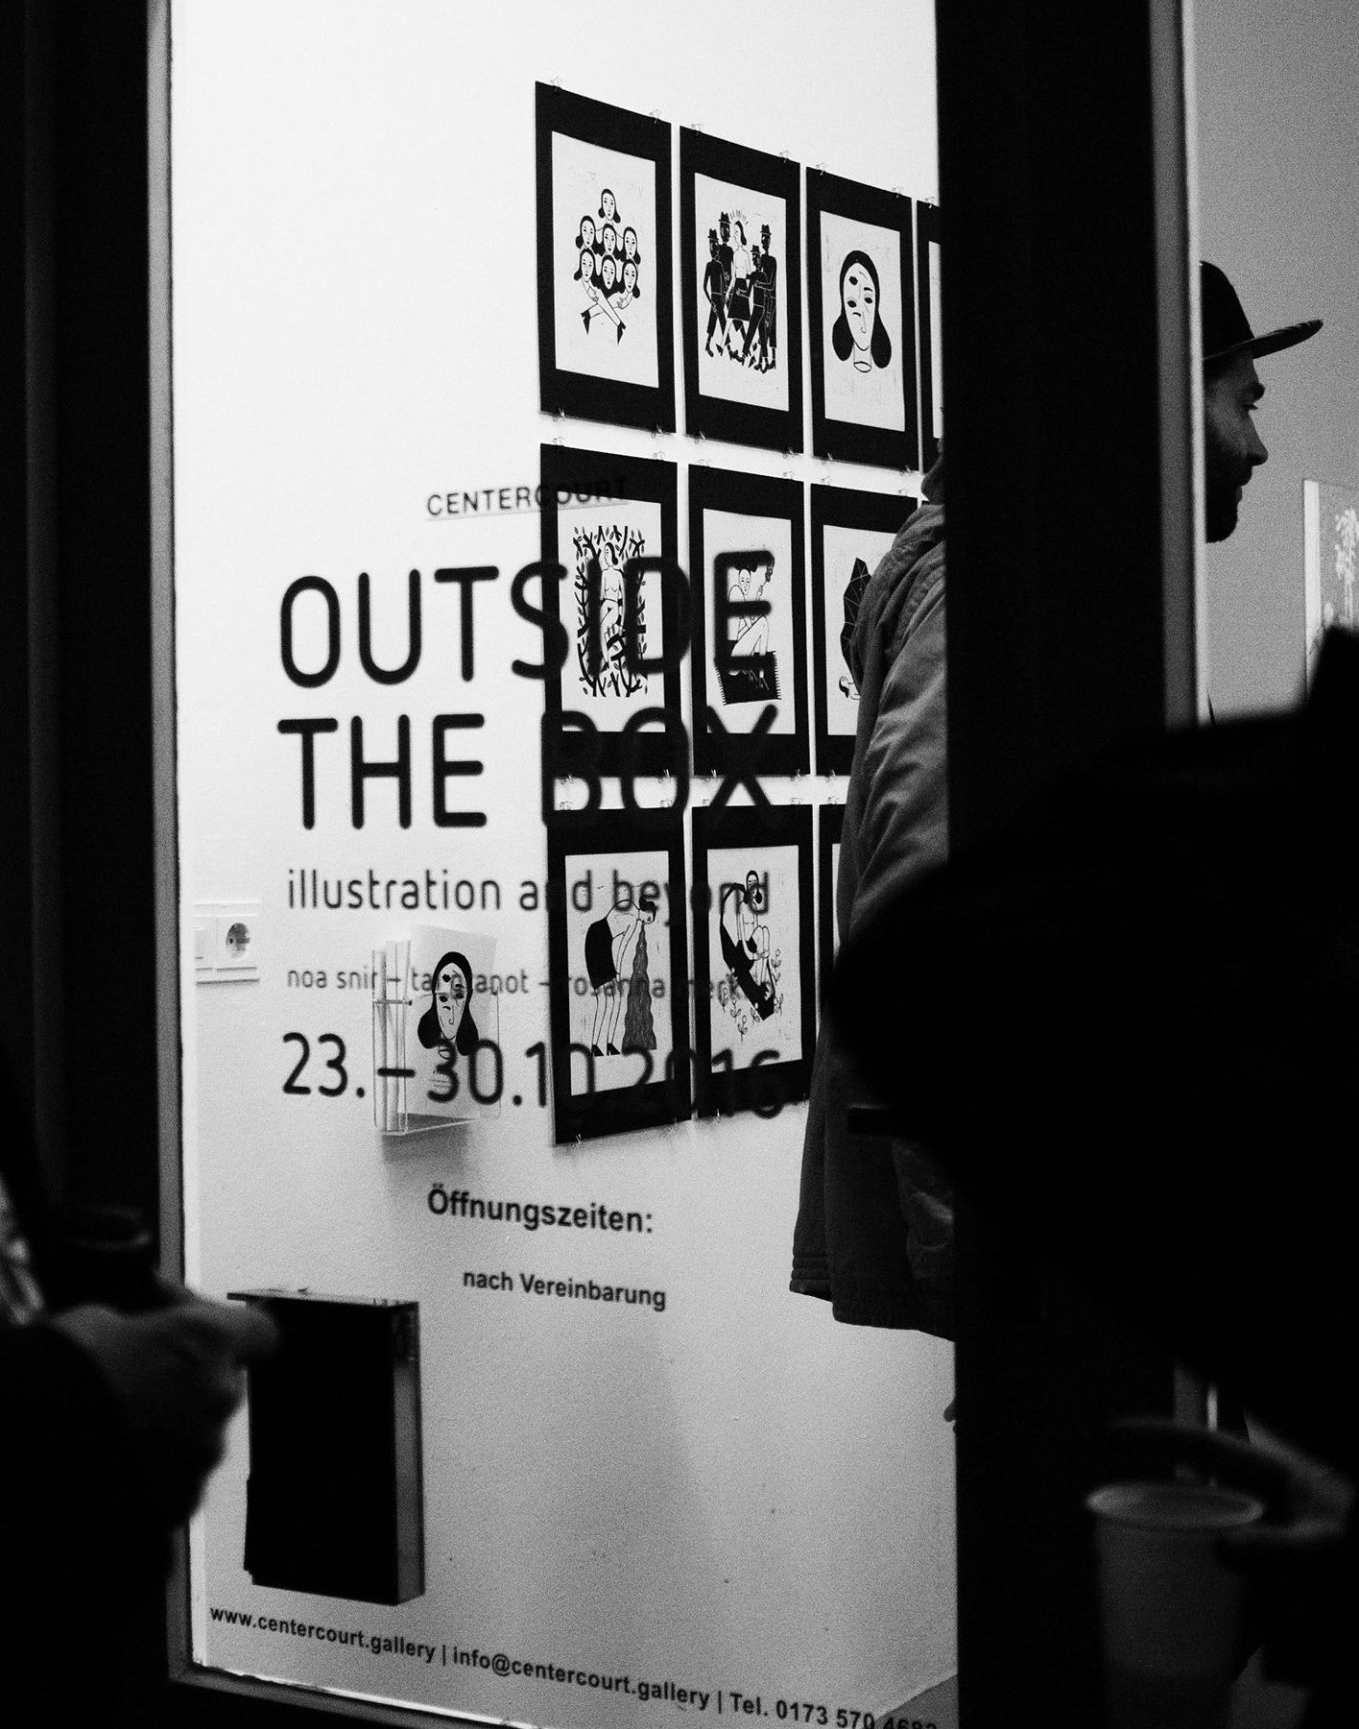 - »OUTSIDE THE BOX – Illustration and beyond«Tal Granot, Rosanna Merklin und Noa Snir22.10.–11.11.2016super+CENTERCOURTAdalbertstraße 44, 80799 München